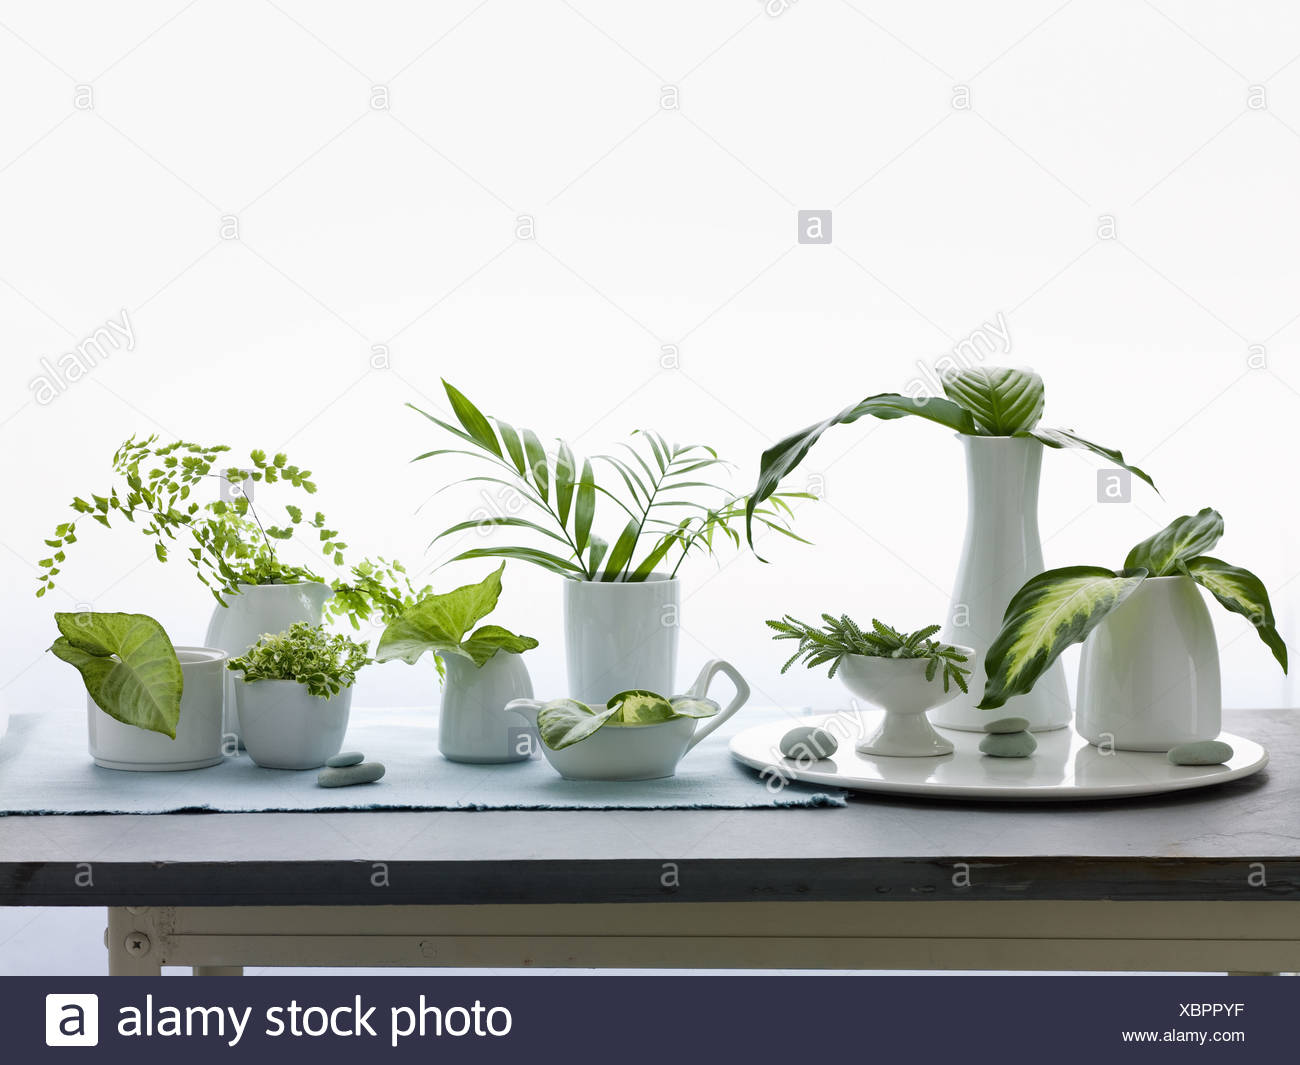 Maryland USA jugs vases green leaves and foliage Studio shot - Stock Image